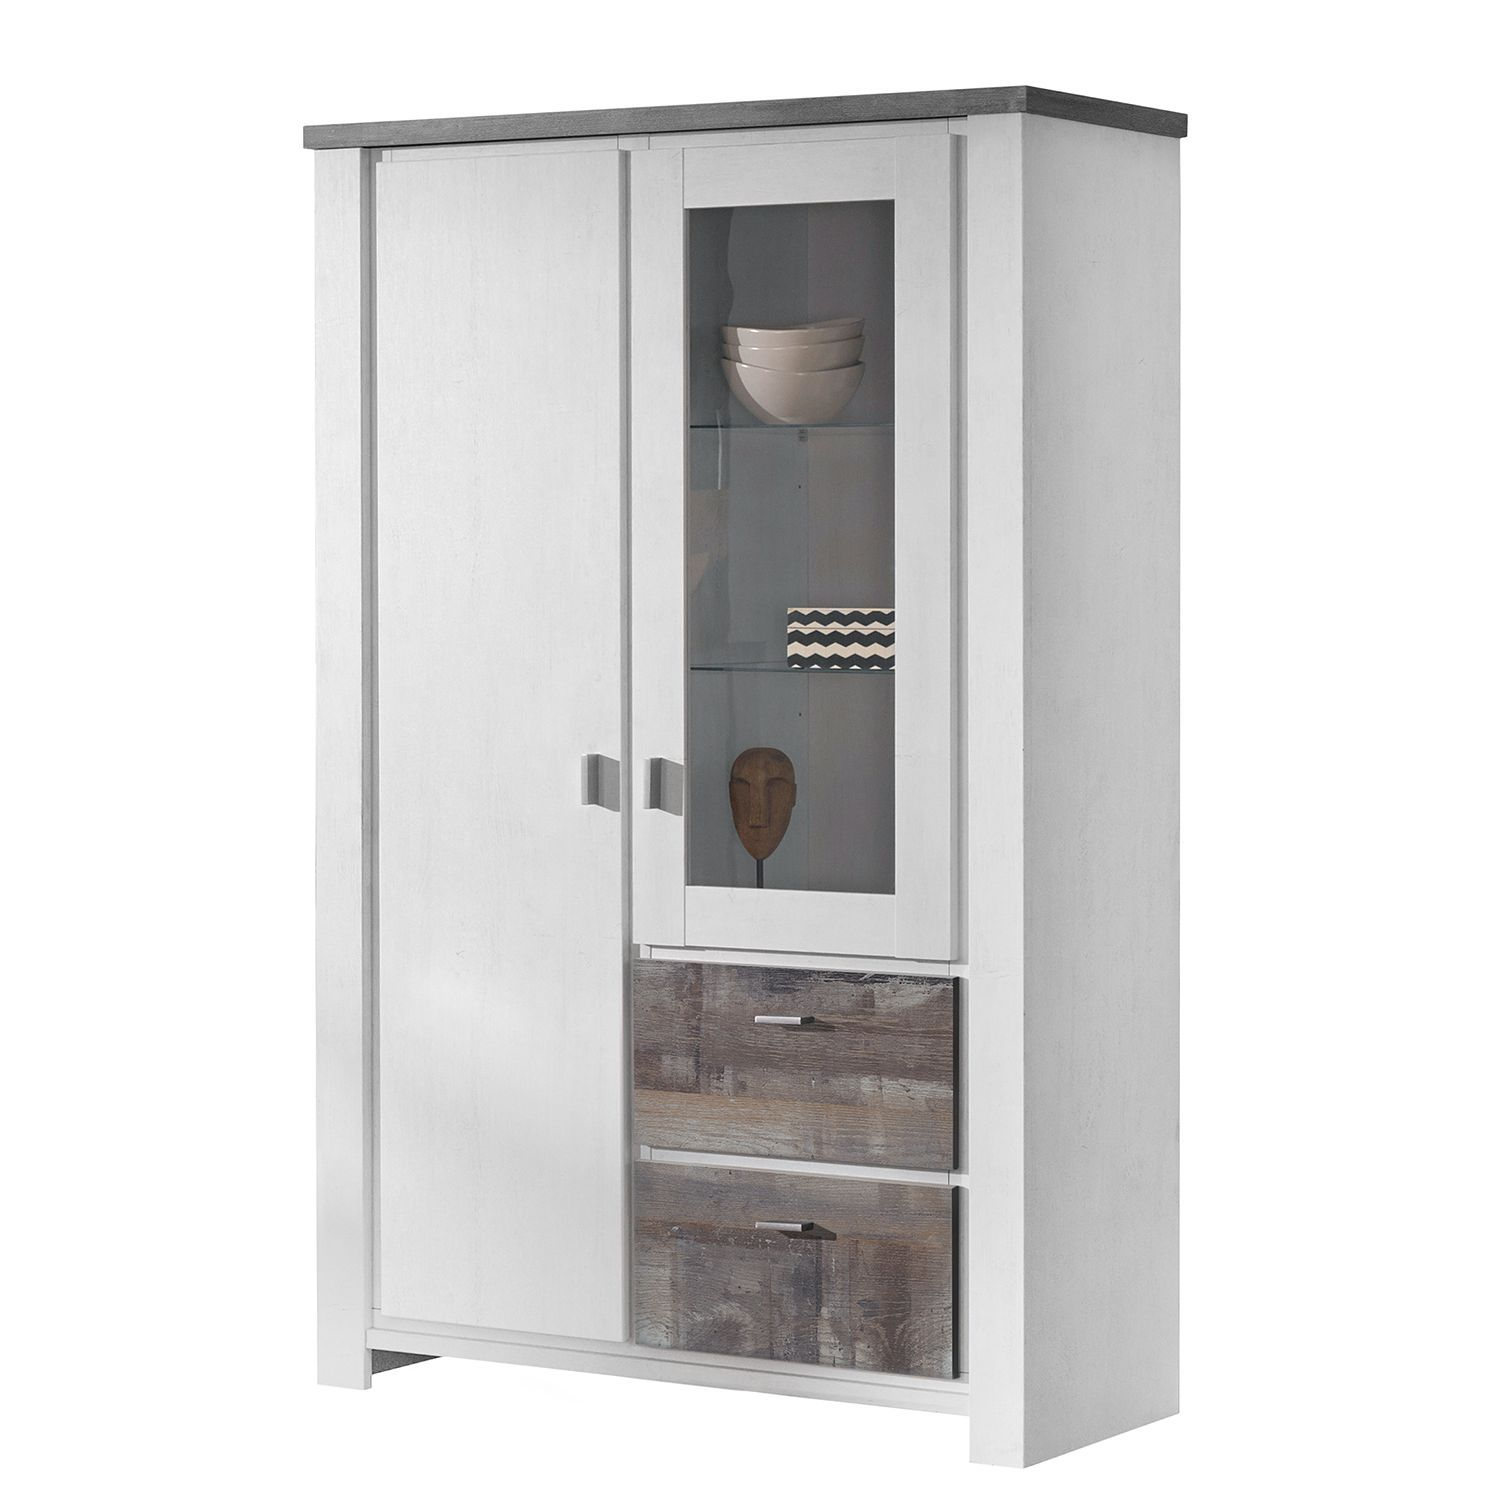 Chiffonier Pas Cher Chiffonnier Gris Metal Commode 4 Tiroirs Design Petite Commode